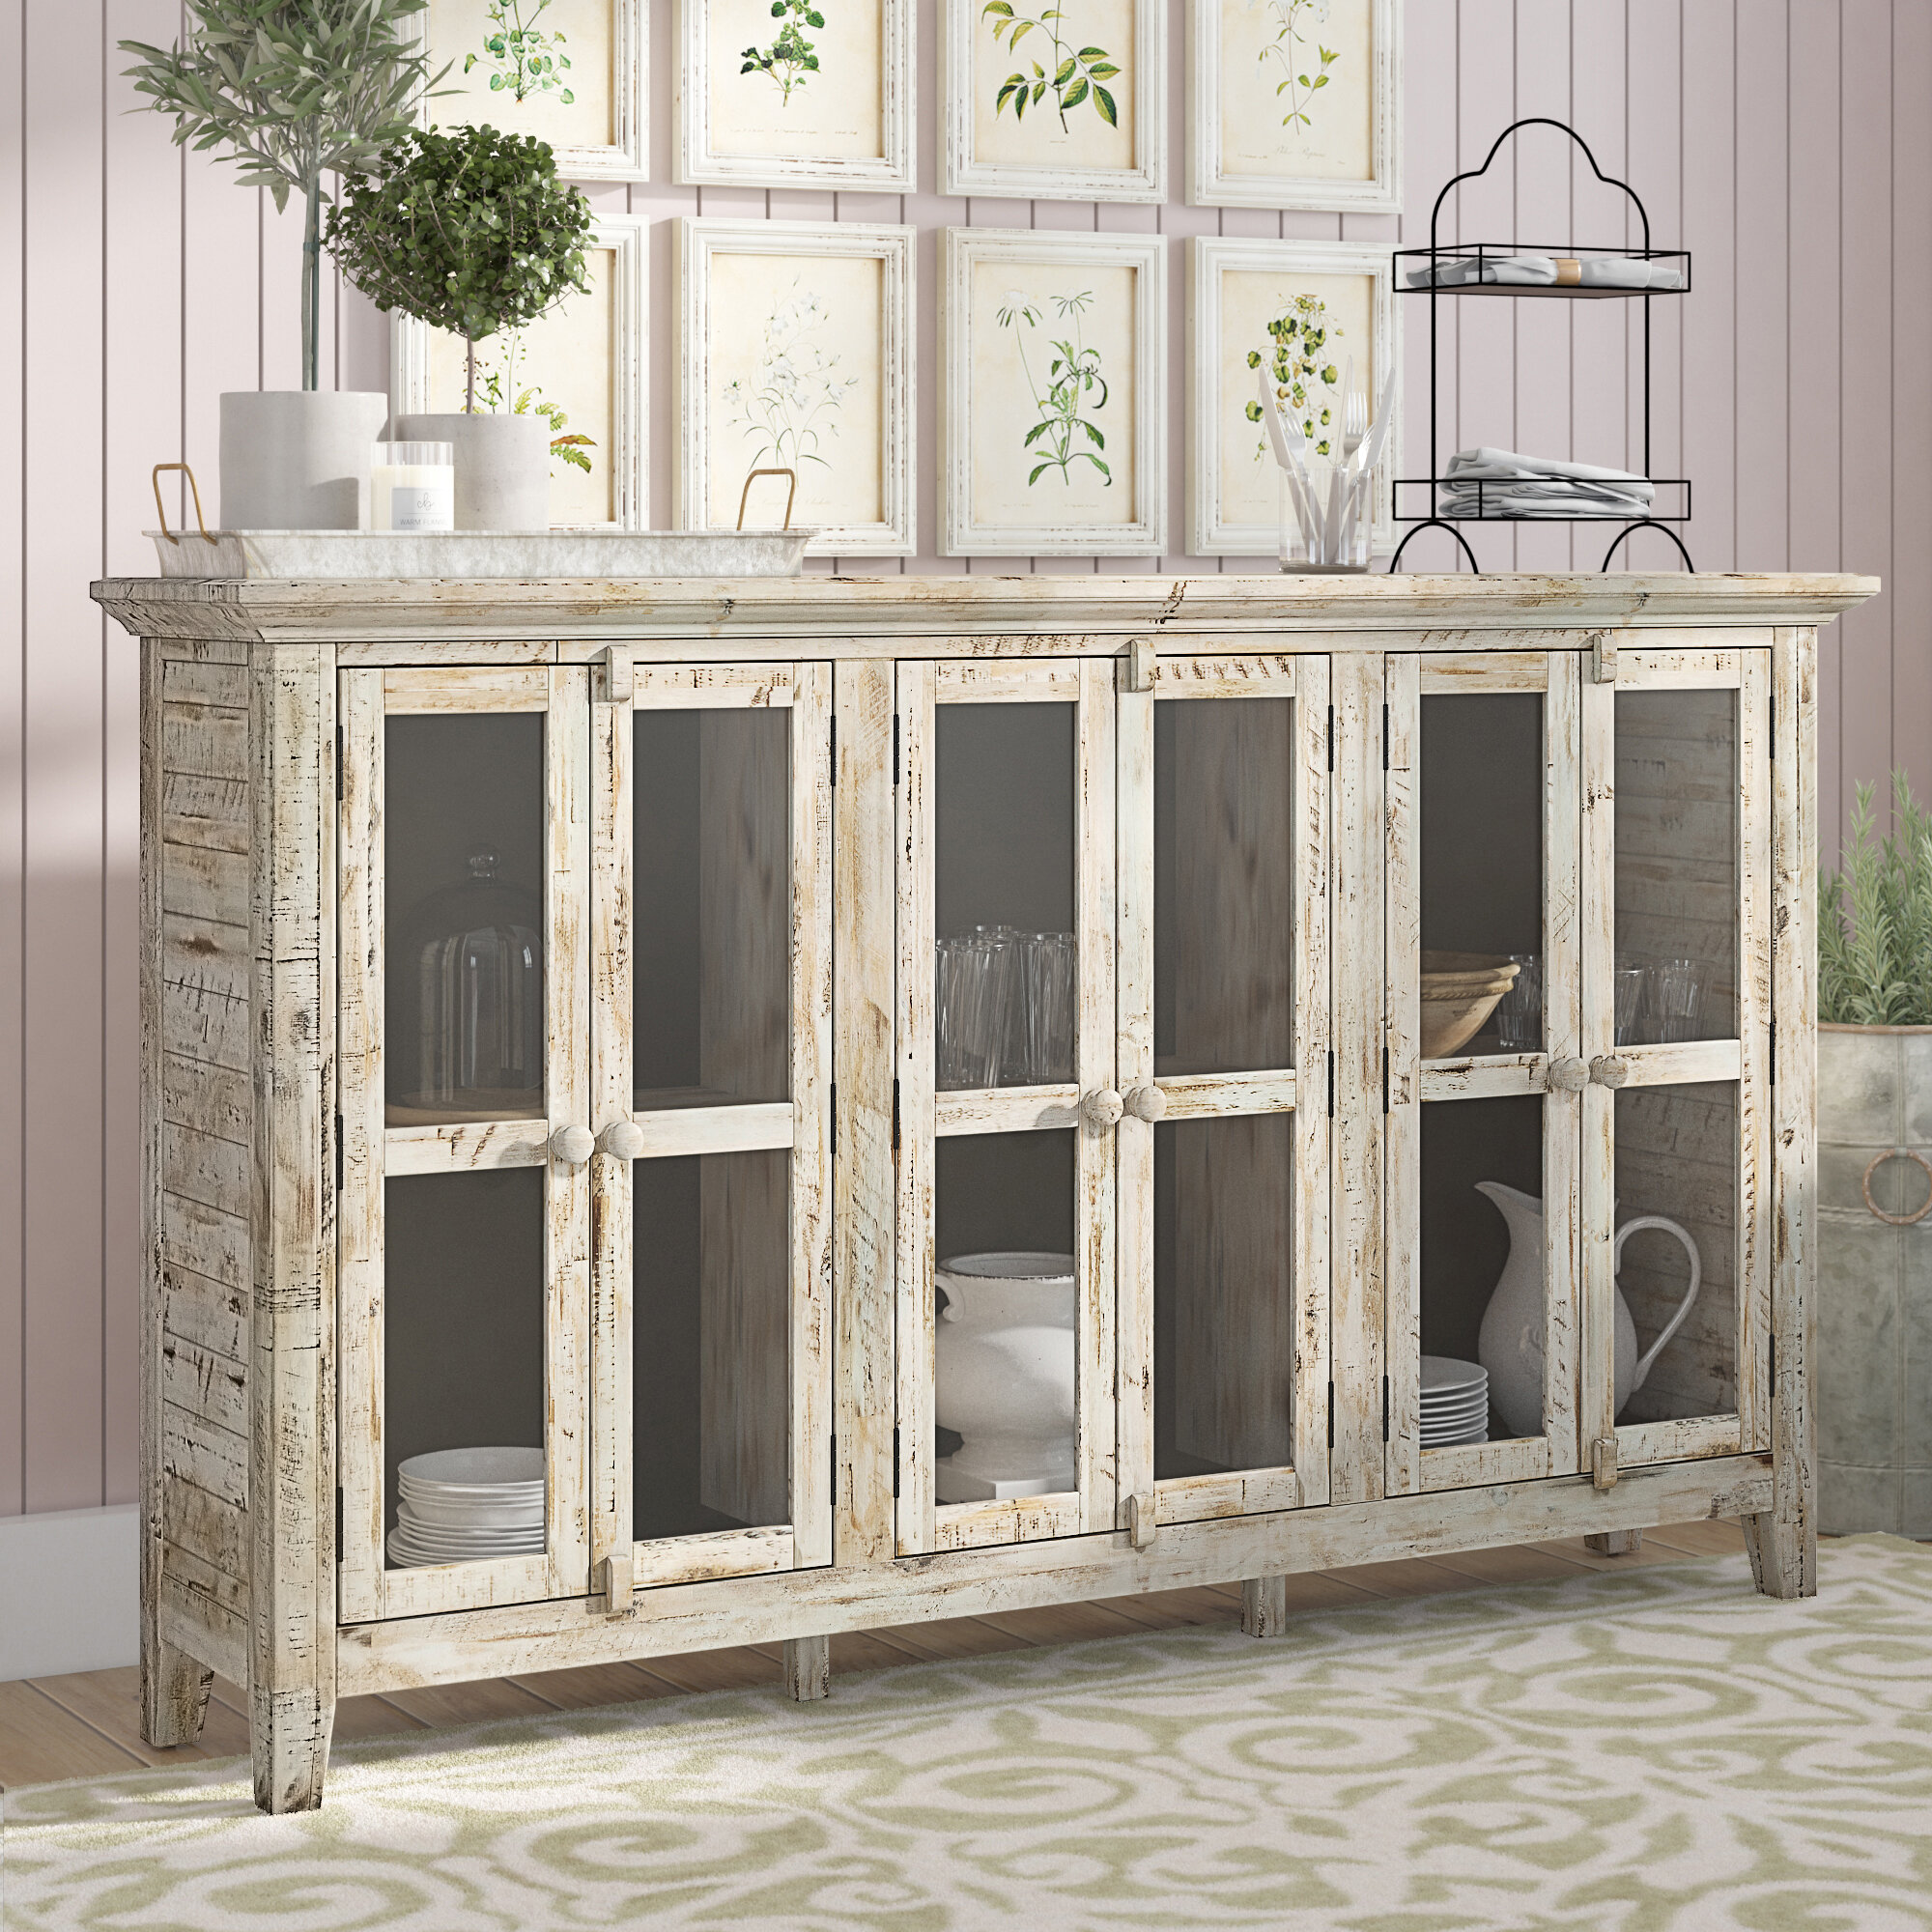 Cabinets & Chests You'll Love in 2019 | Wayfair